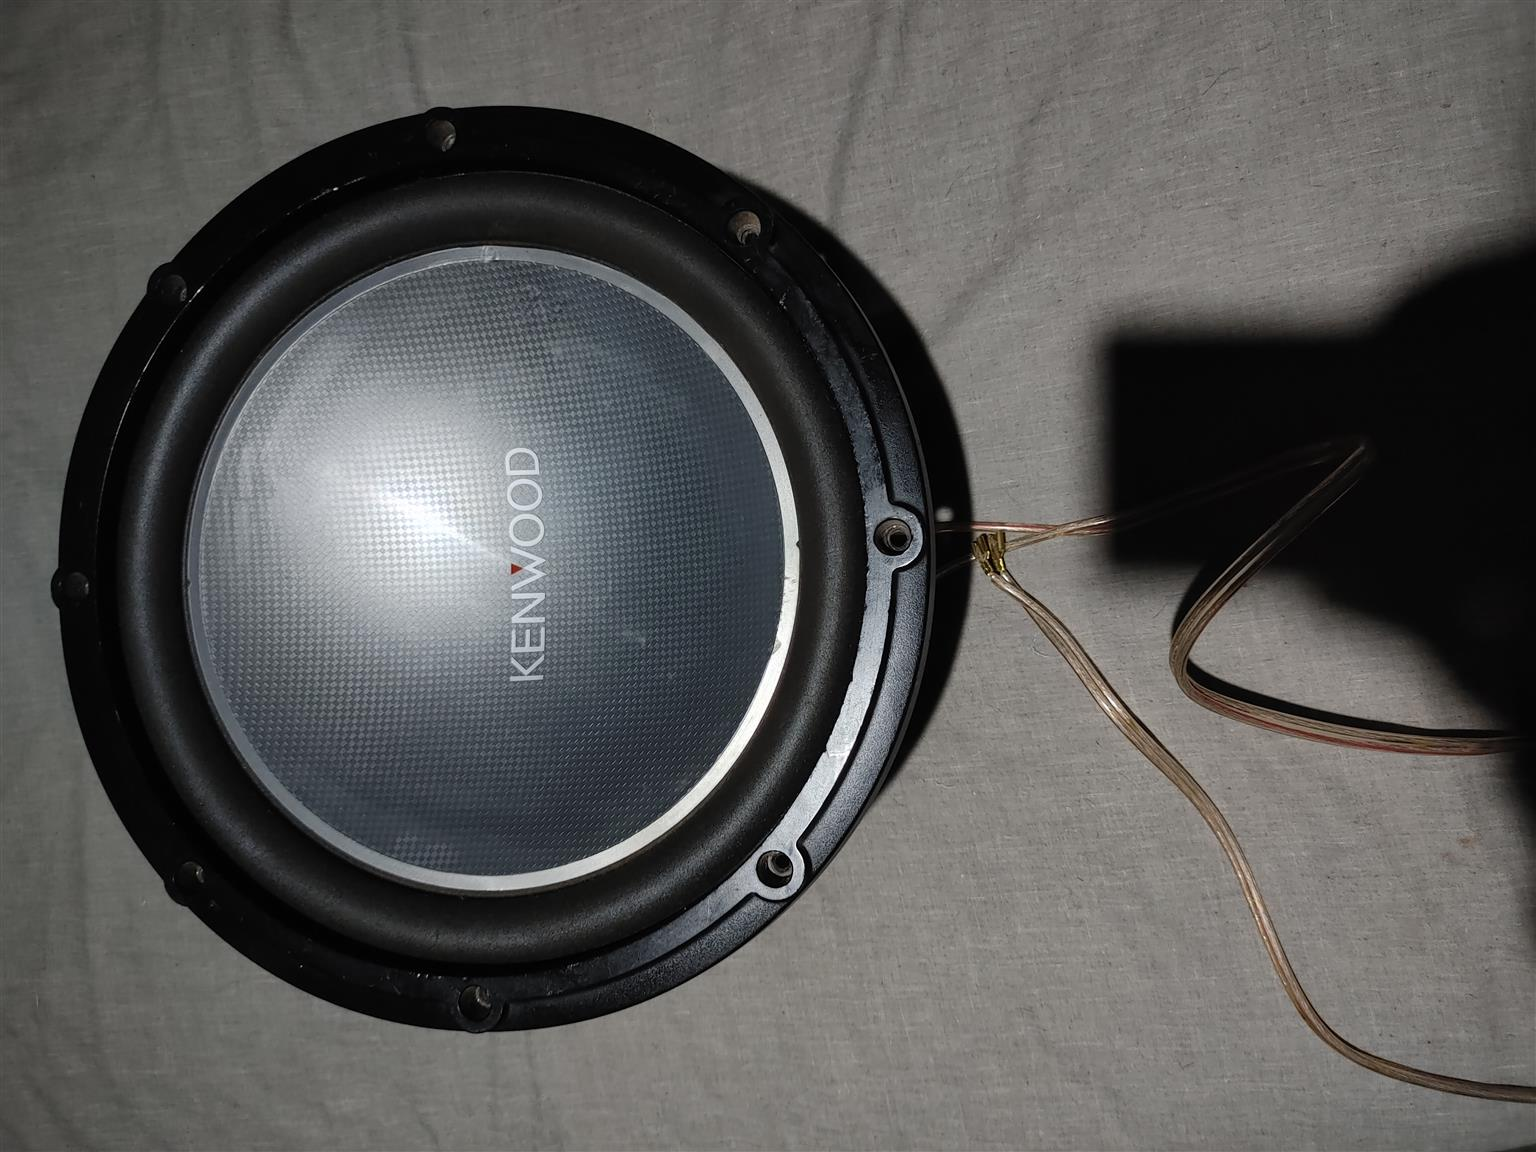 Xtc 8500w amplifier and Kenwood 1200w subwoofer with custom box